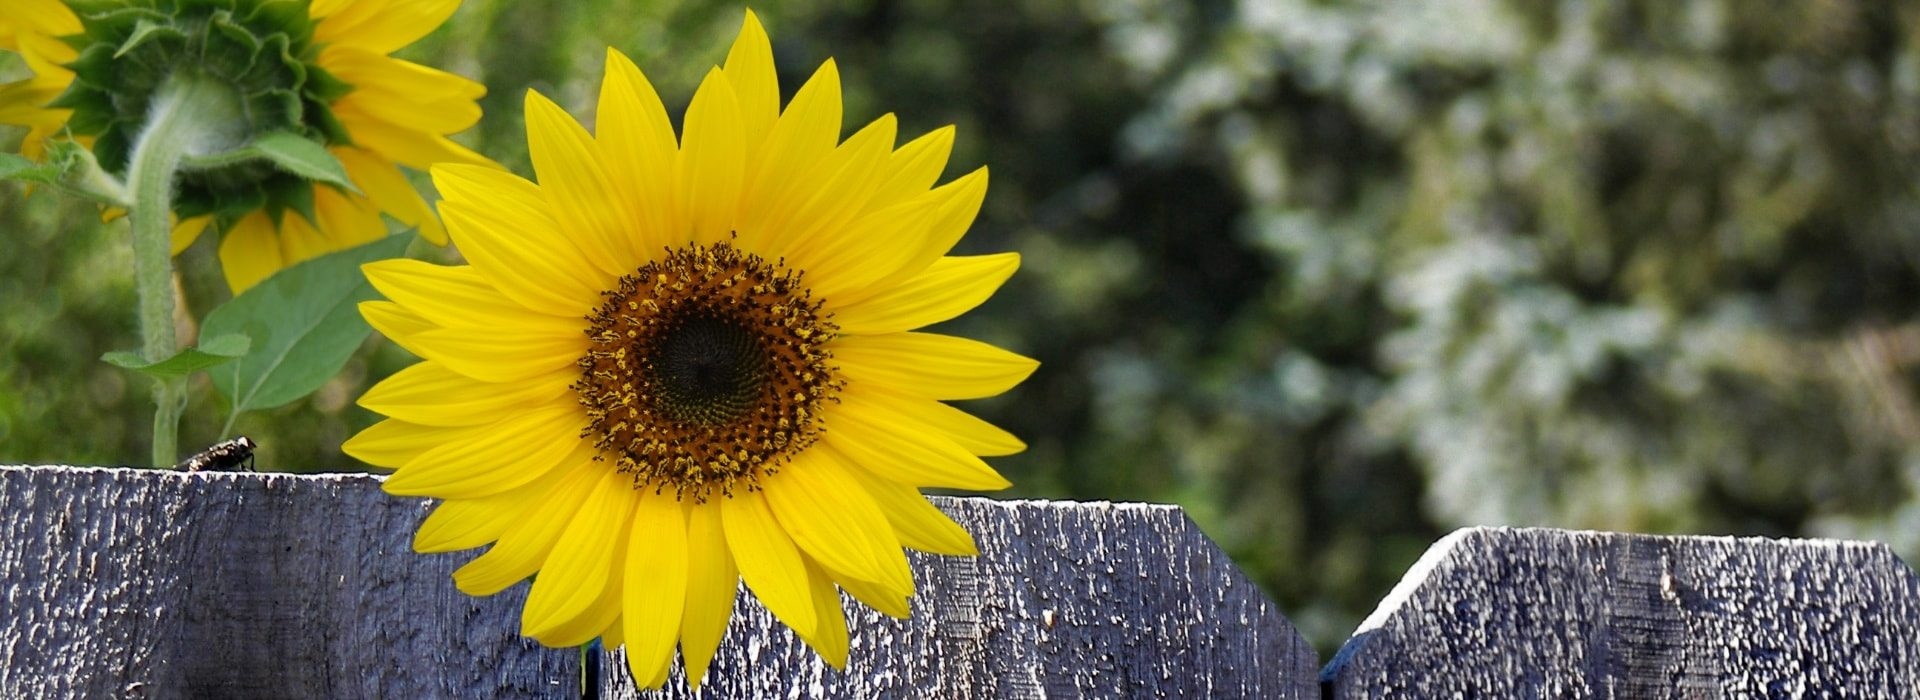 Close up view of large yellow sunflower peeking over fence